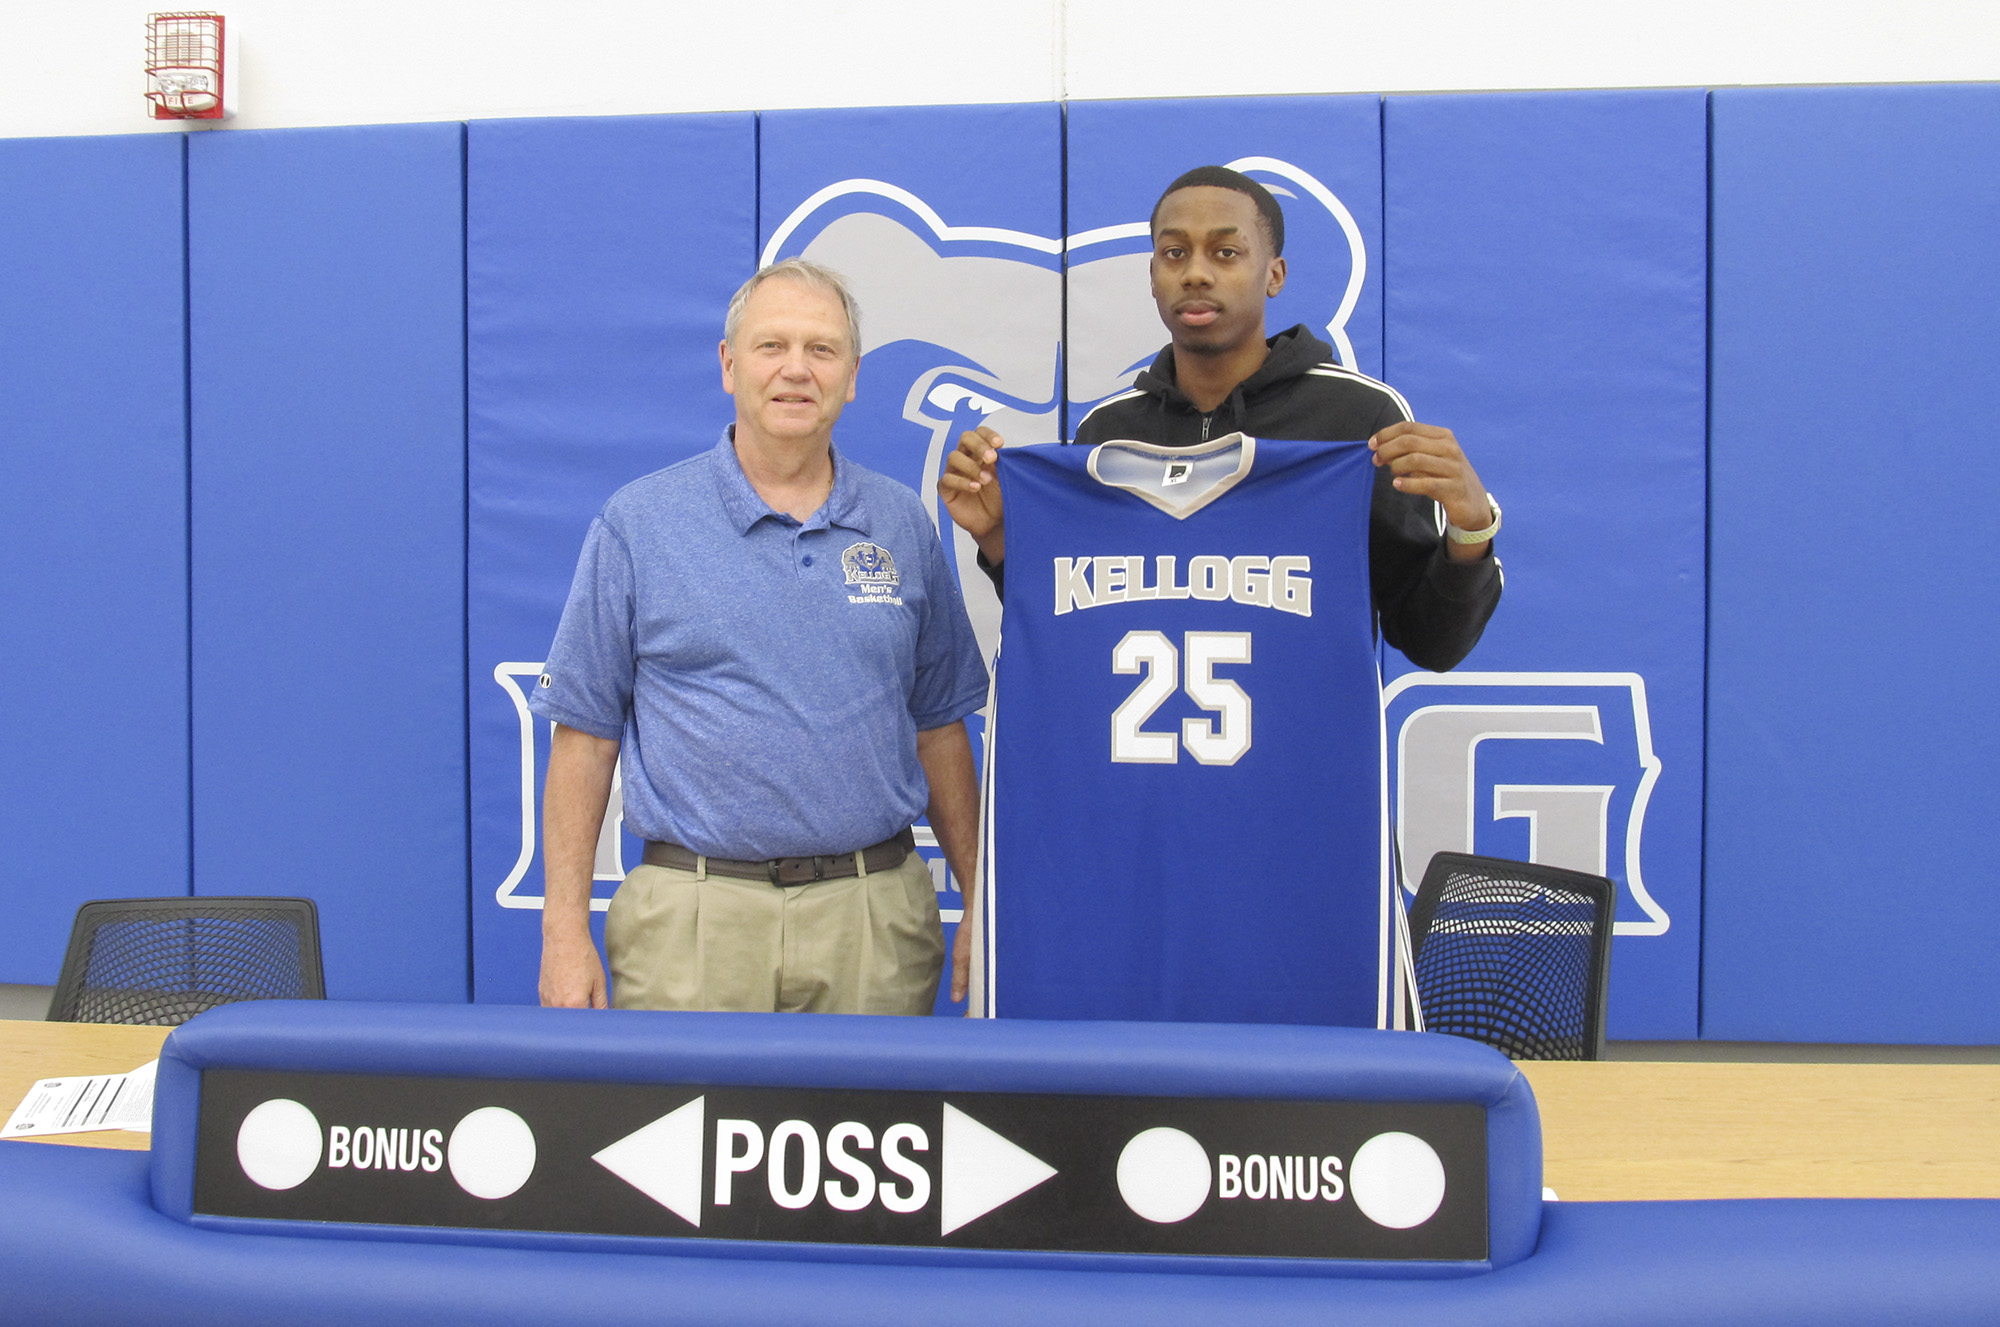 Pictured, from left to right, are KCC's Head Men's Basketball Coach Gary Sprague and TahVeayr Boykins.